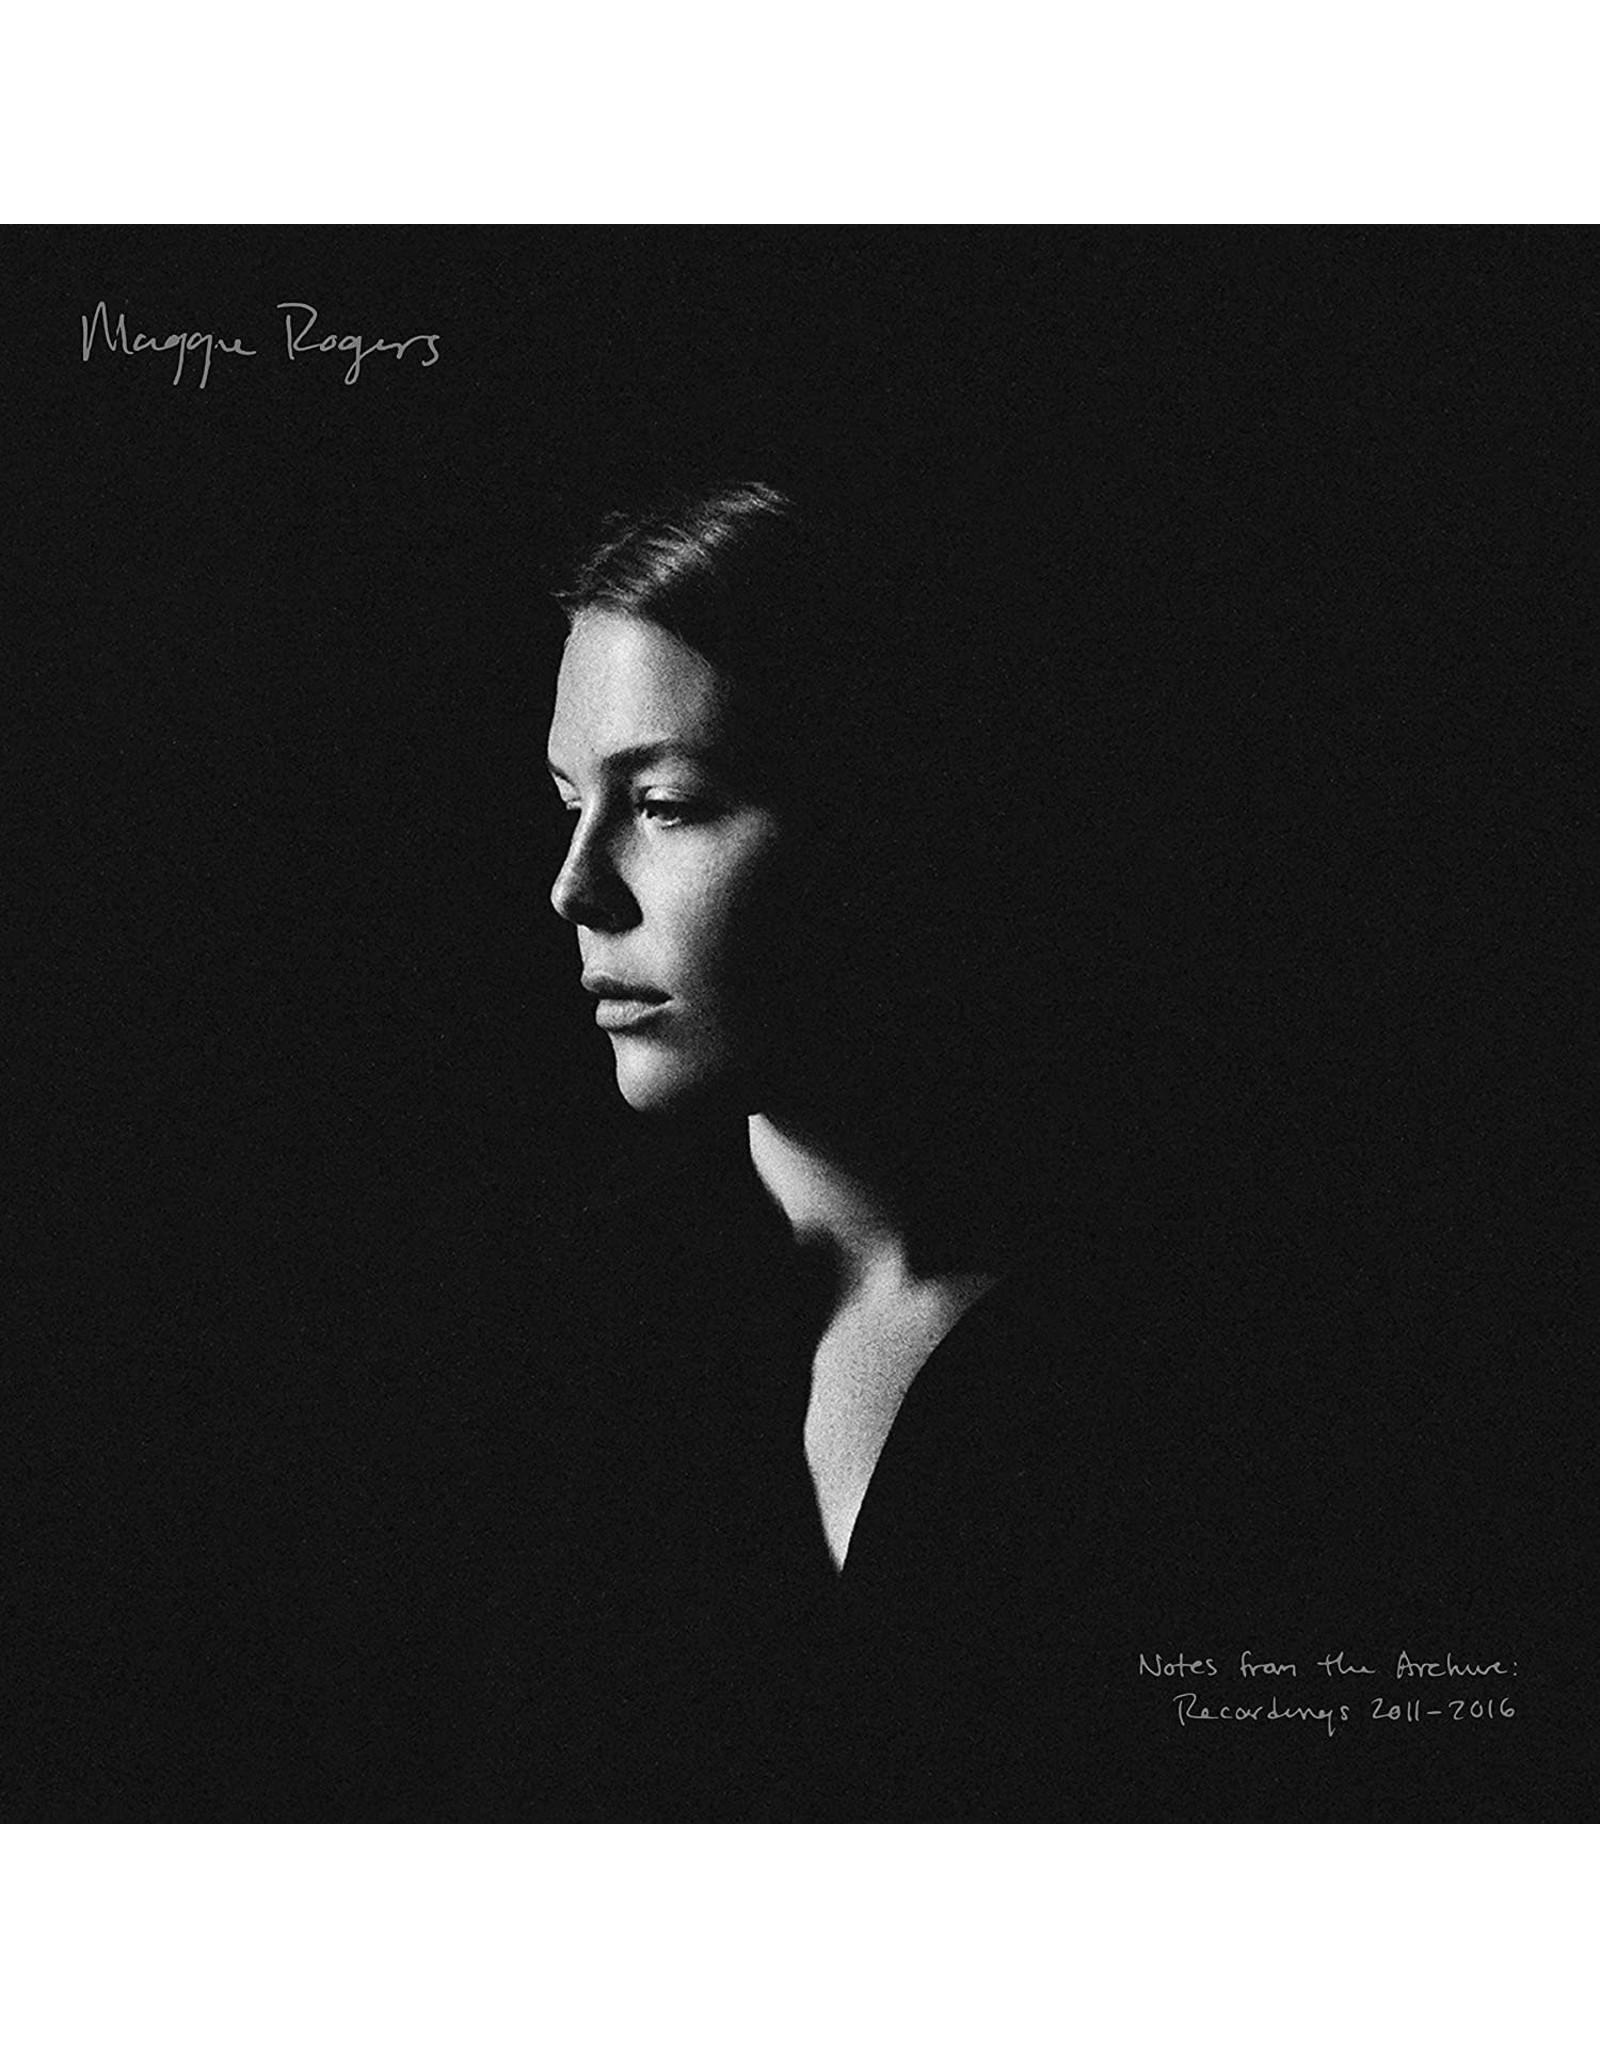 Maggie Rogers - Notes From the Archives (2011 to 2016)